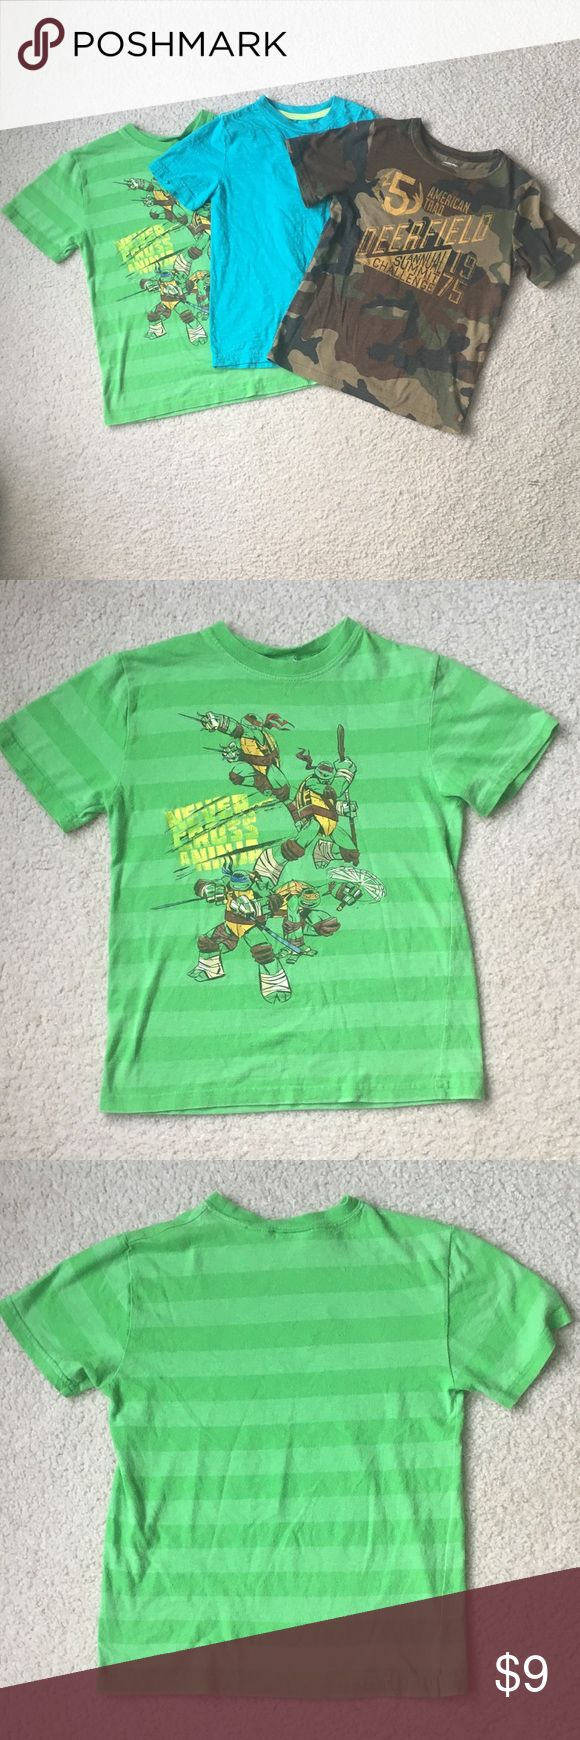 3 Boys T-Shirts Arizona/Nickelodeon sizes 8/10-12 3 Boys T-Shirts Arizona/Nickelodeon sizes 8 and 10/12(L). Green shirt is Nickelodeon and has pilling wear visible size Large. Army brown and turquoise shirt sizes 8 and Arizona brand. All are used but still good condition. Arizona Jean Company Shirts & Tops Tees - Short Sleeve